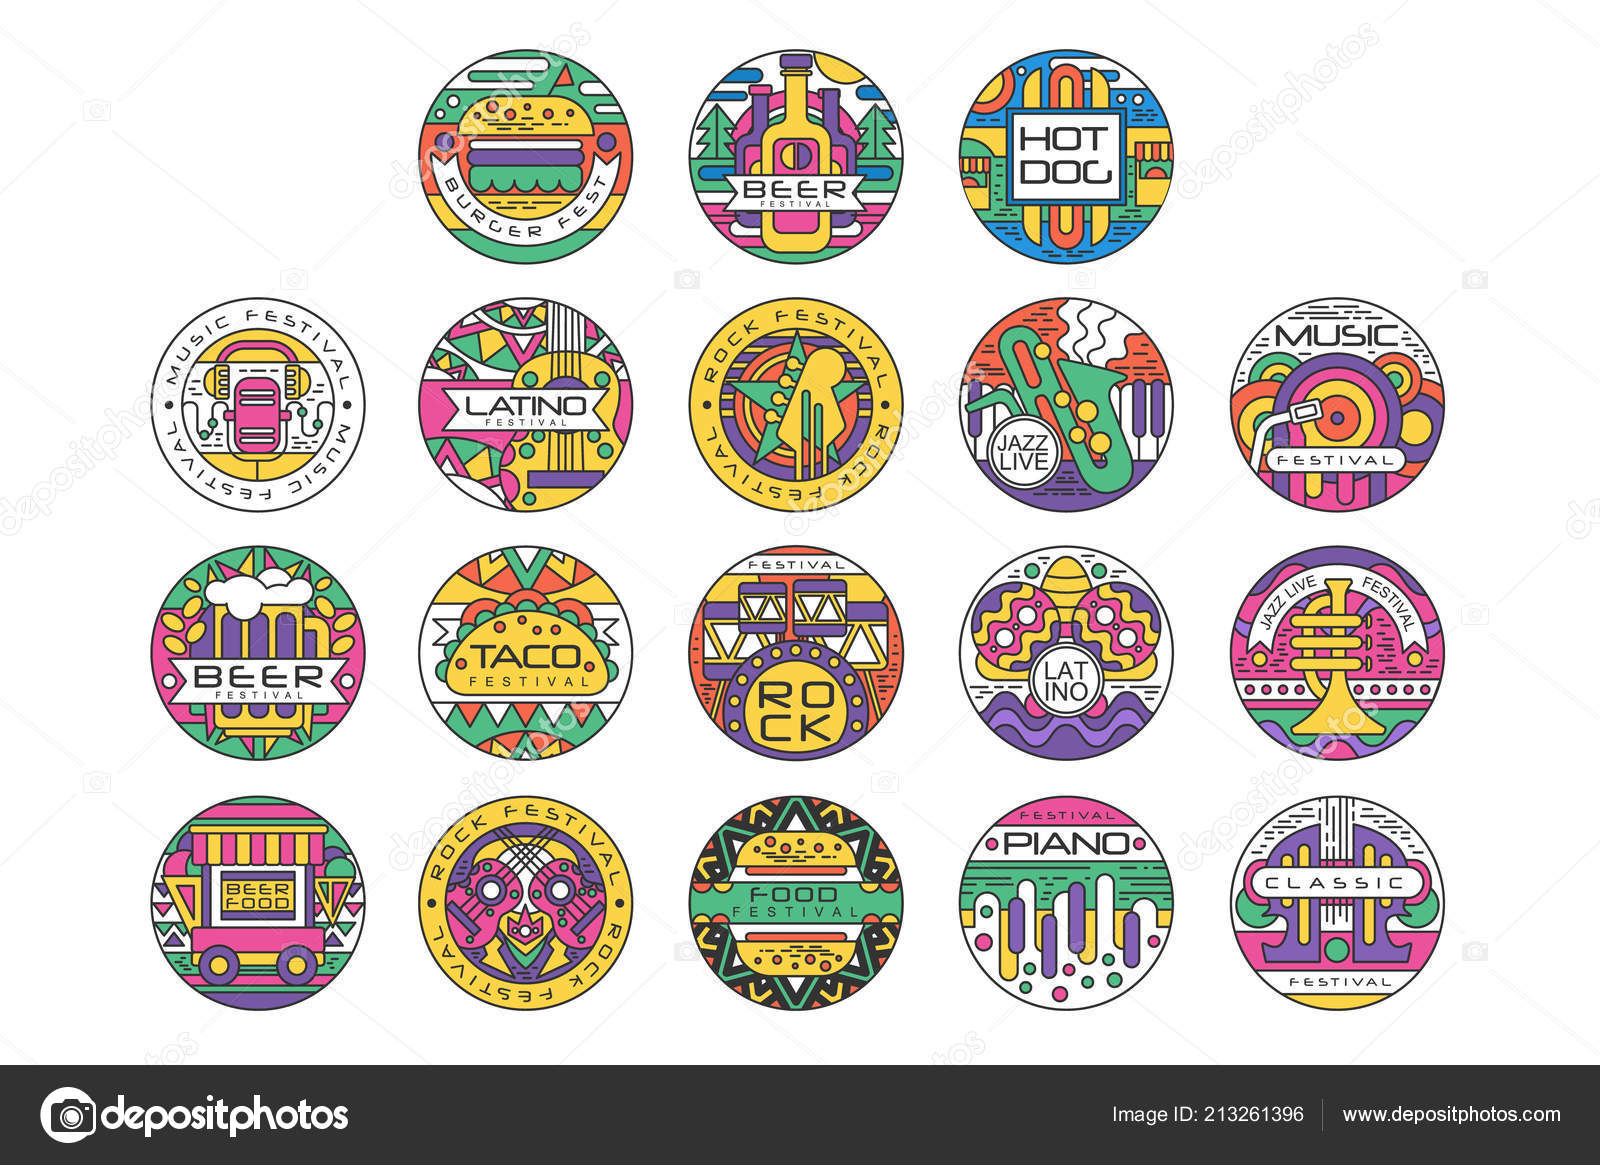 Food Festival Logo Set Burger Fest Beer Festival Hot Dog Tako Festival Rock Food And Music Round Labels Or Stickers Vector Illustrations Vector Image By C Topvectors Vector Stock 213261396